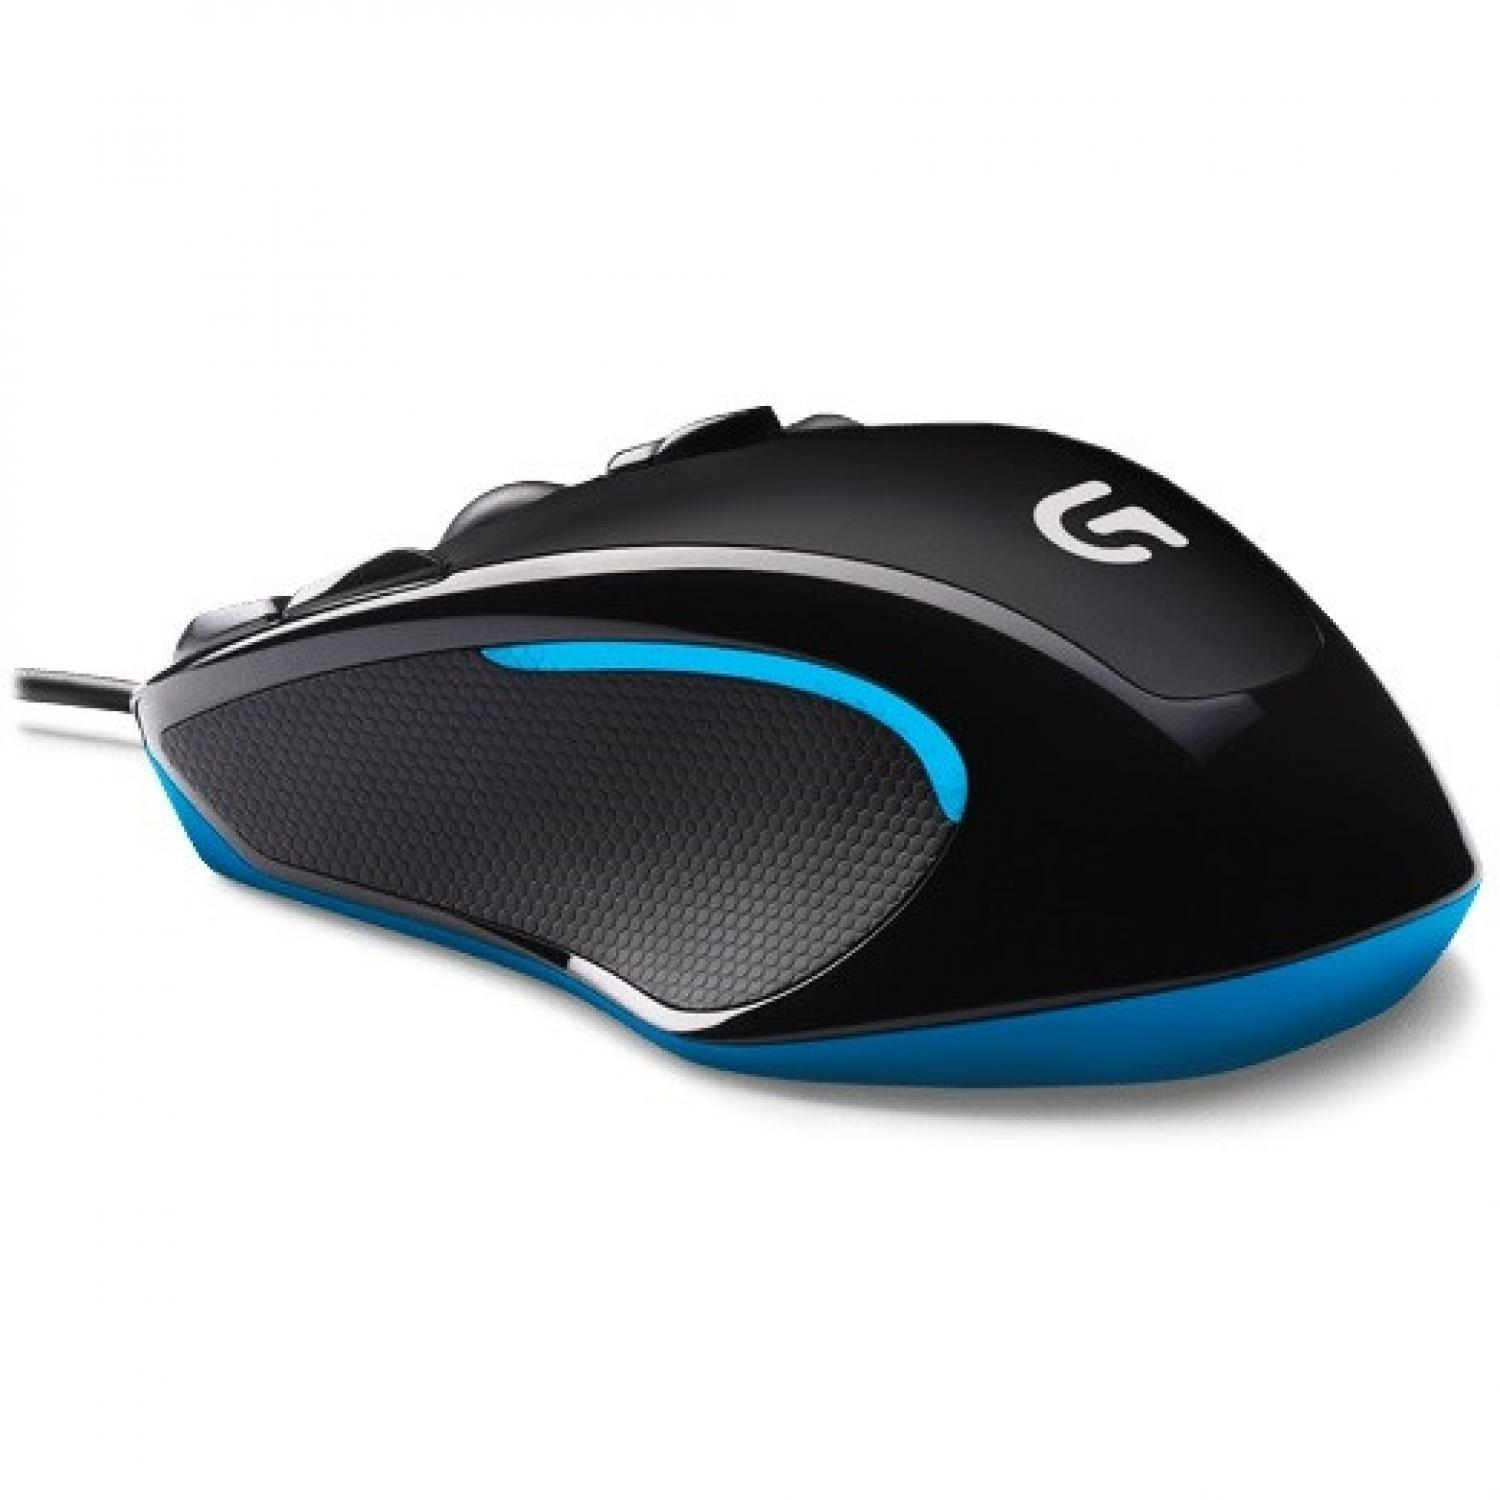 Logitech Optical Gaming Mouse - G300s